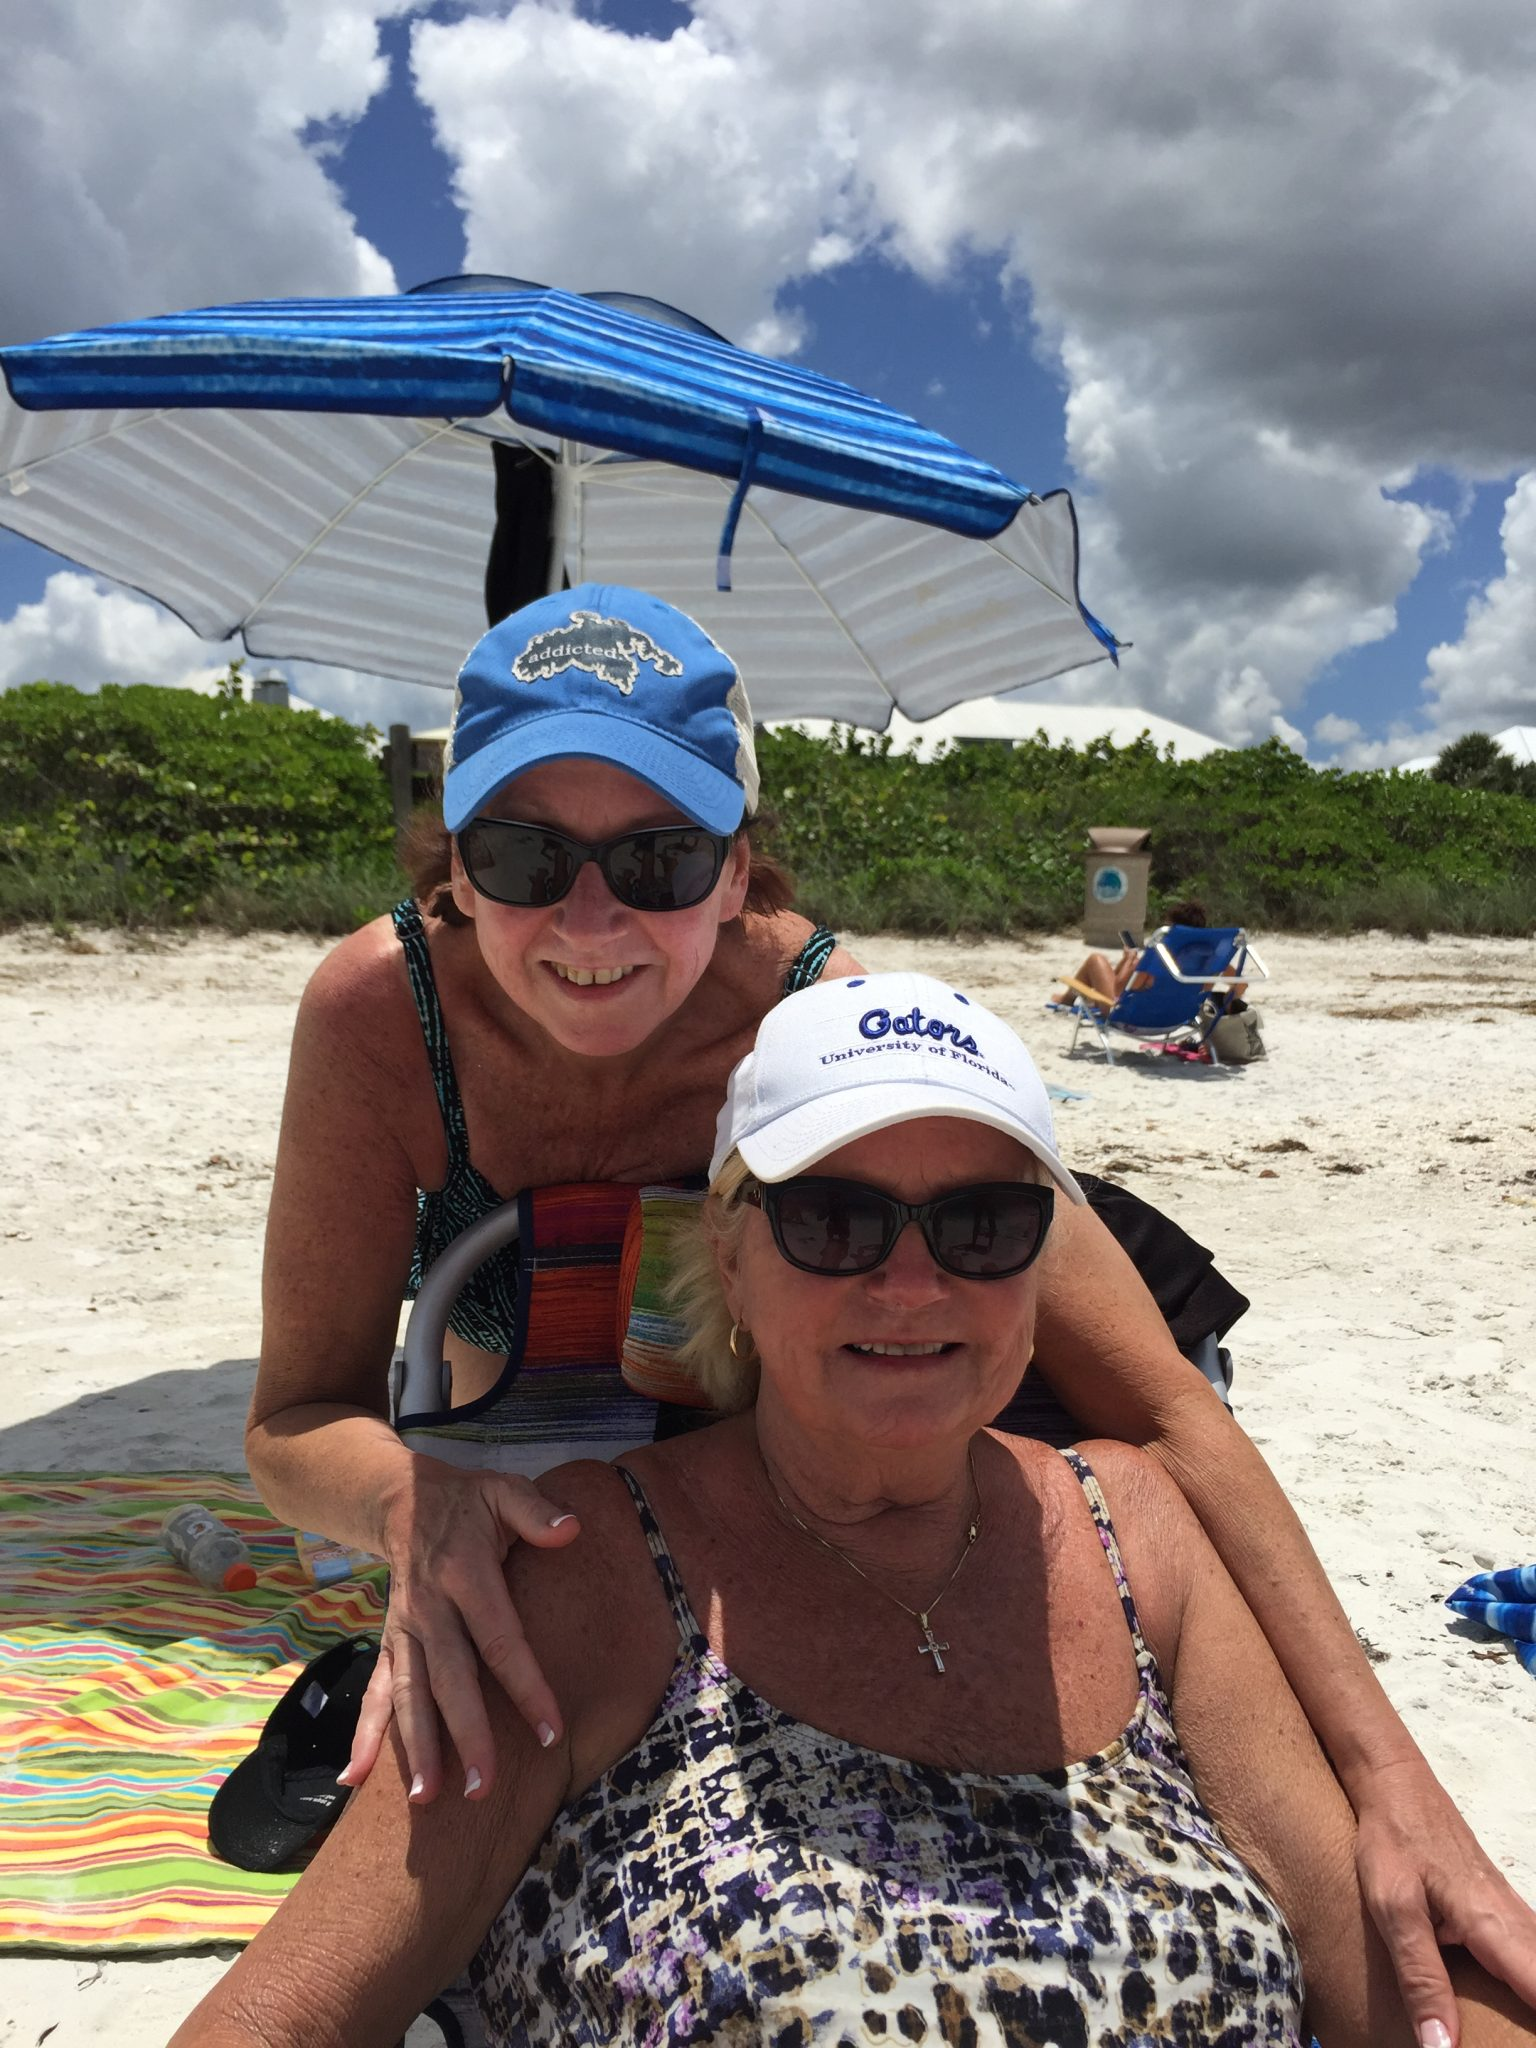 Me and my sissy Jan at the beach in Naples. One of her happiest places. I will carry your heart in my heart ❤️